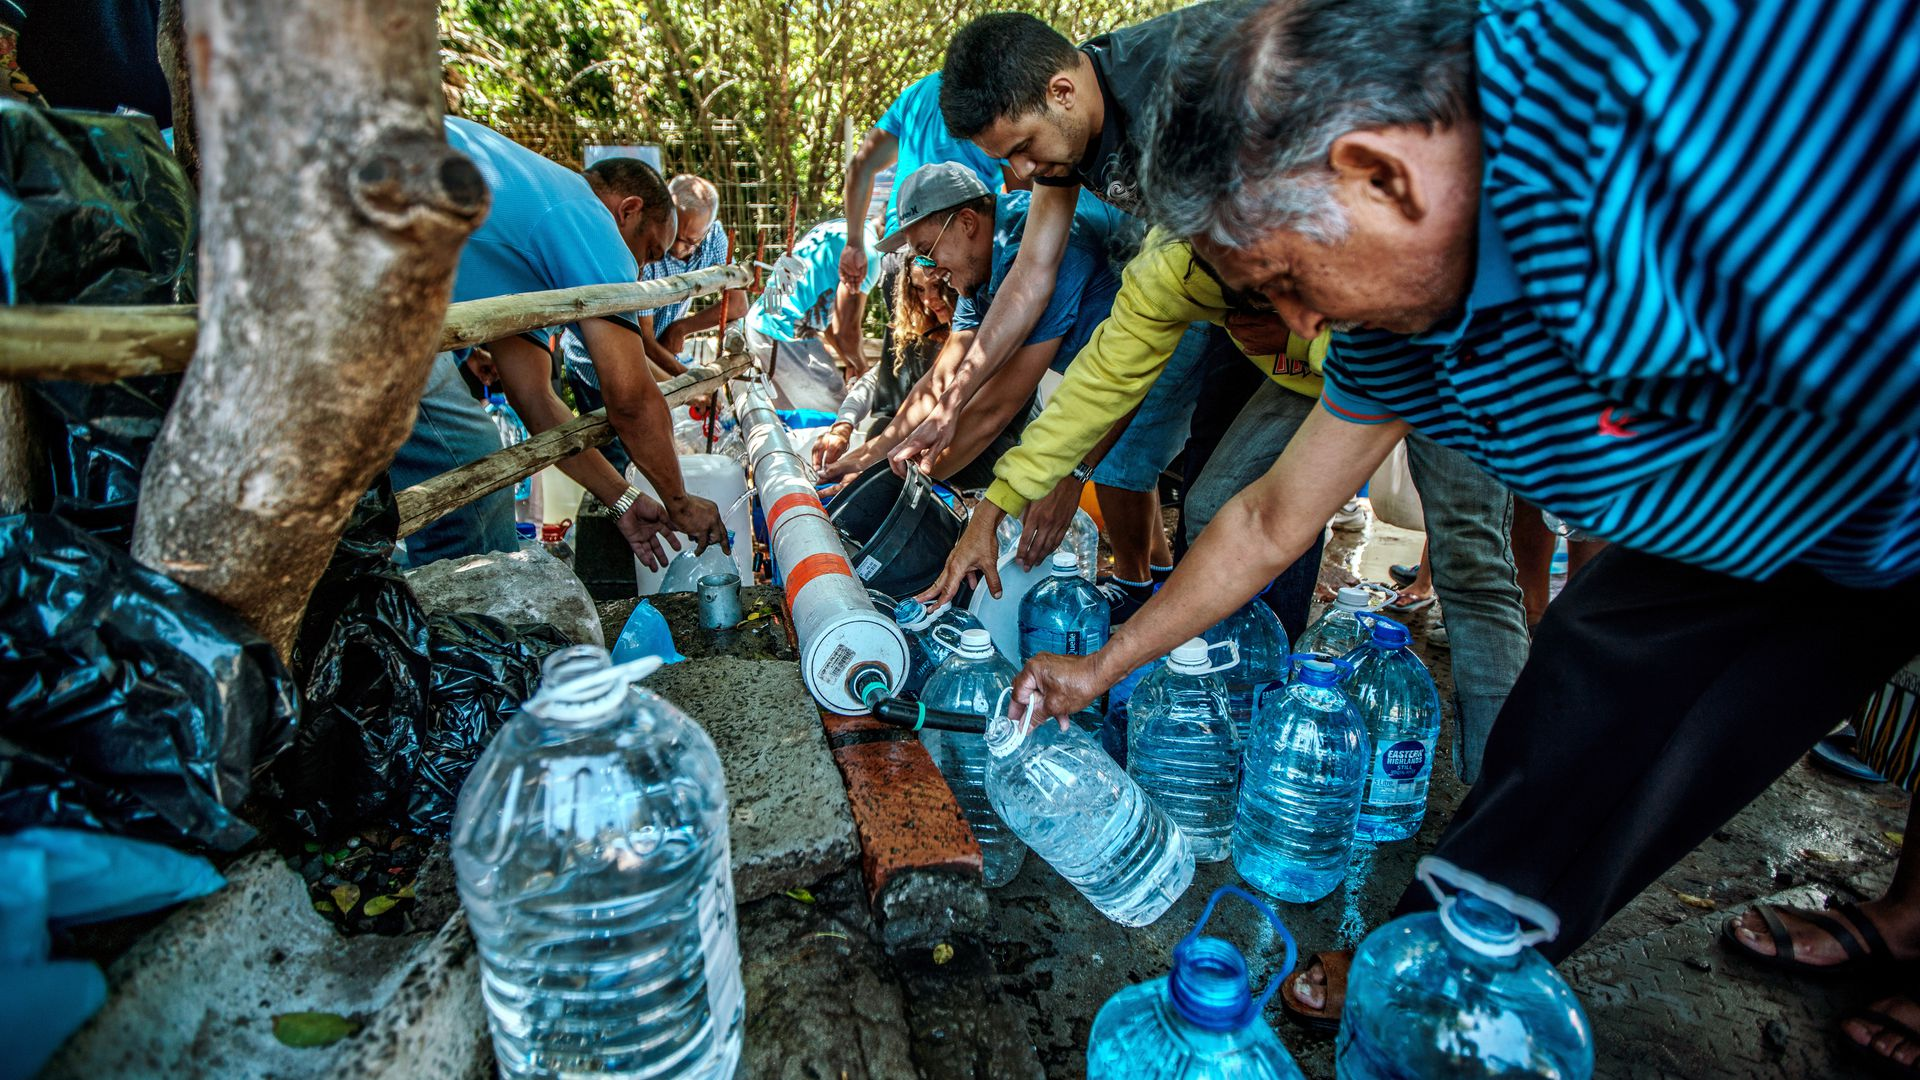 Cape Town residents filling water jugs from pipe